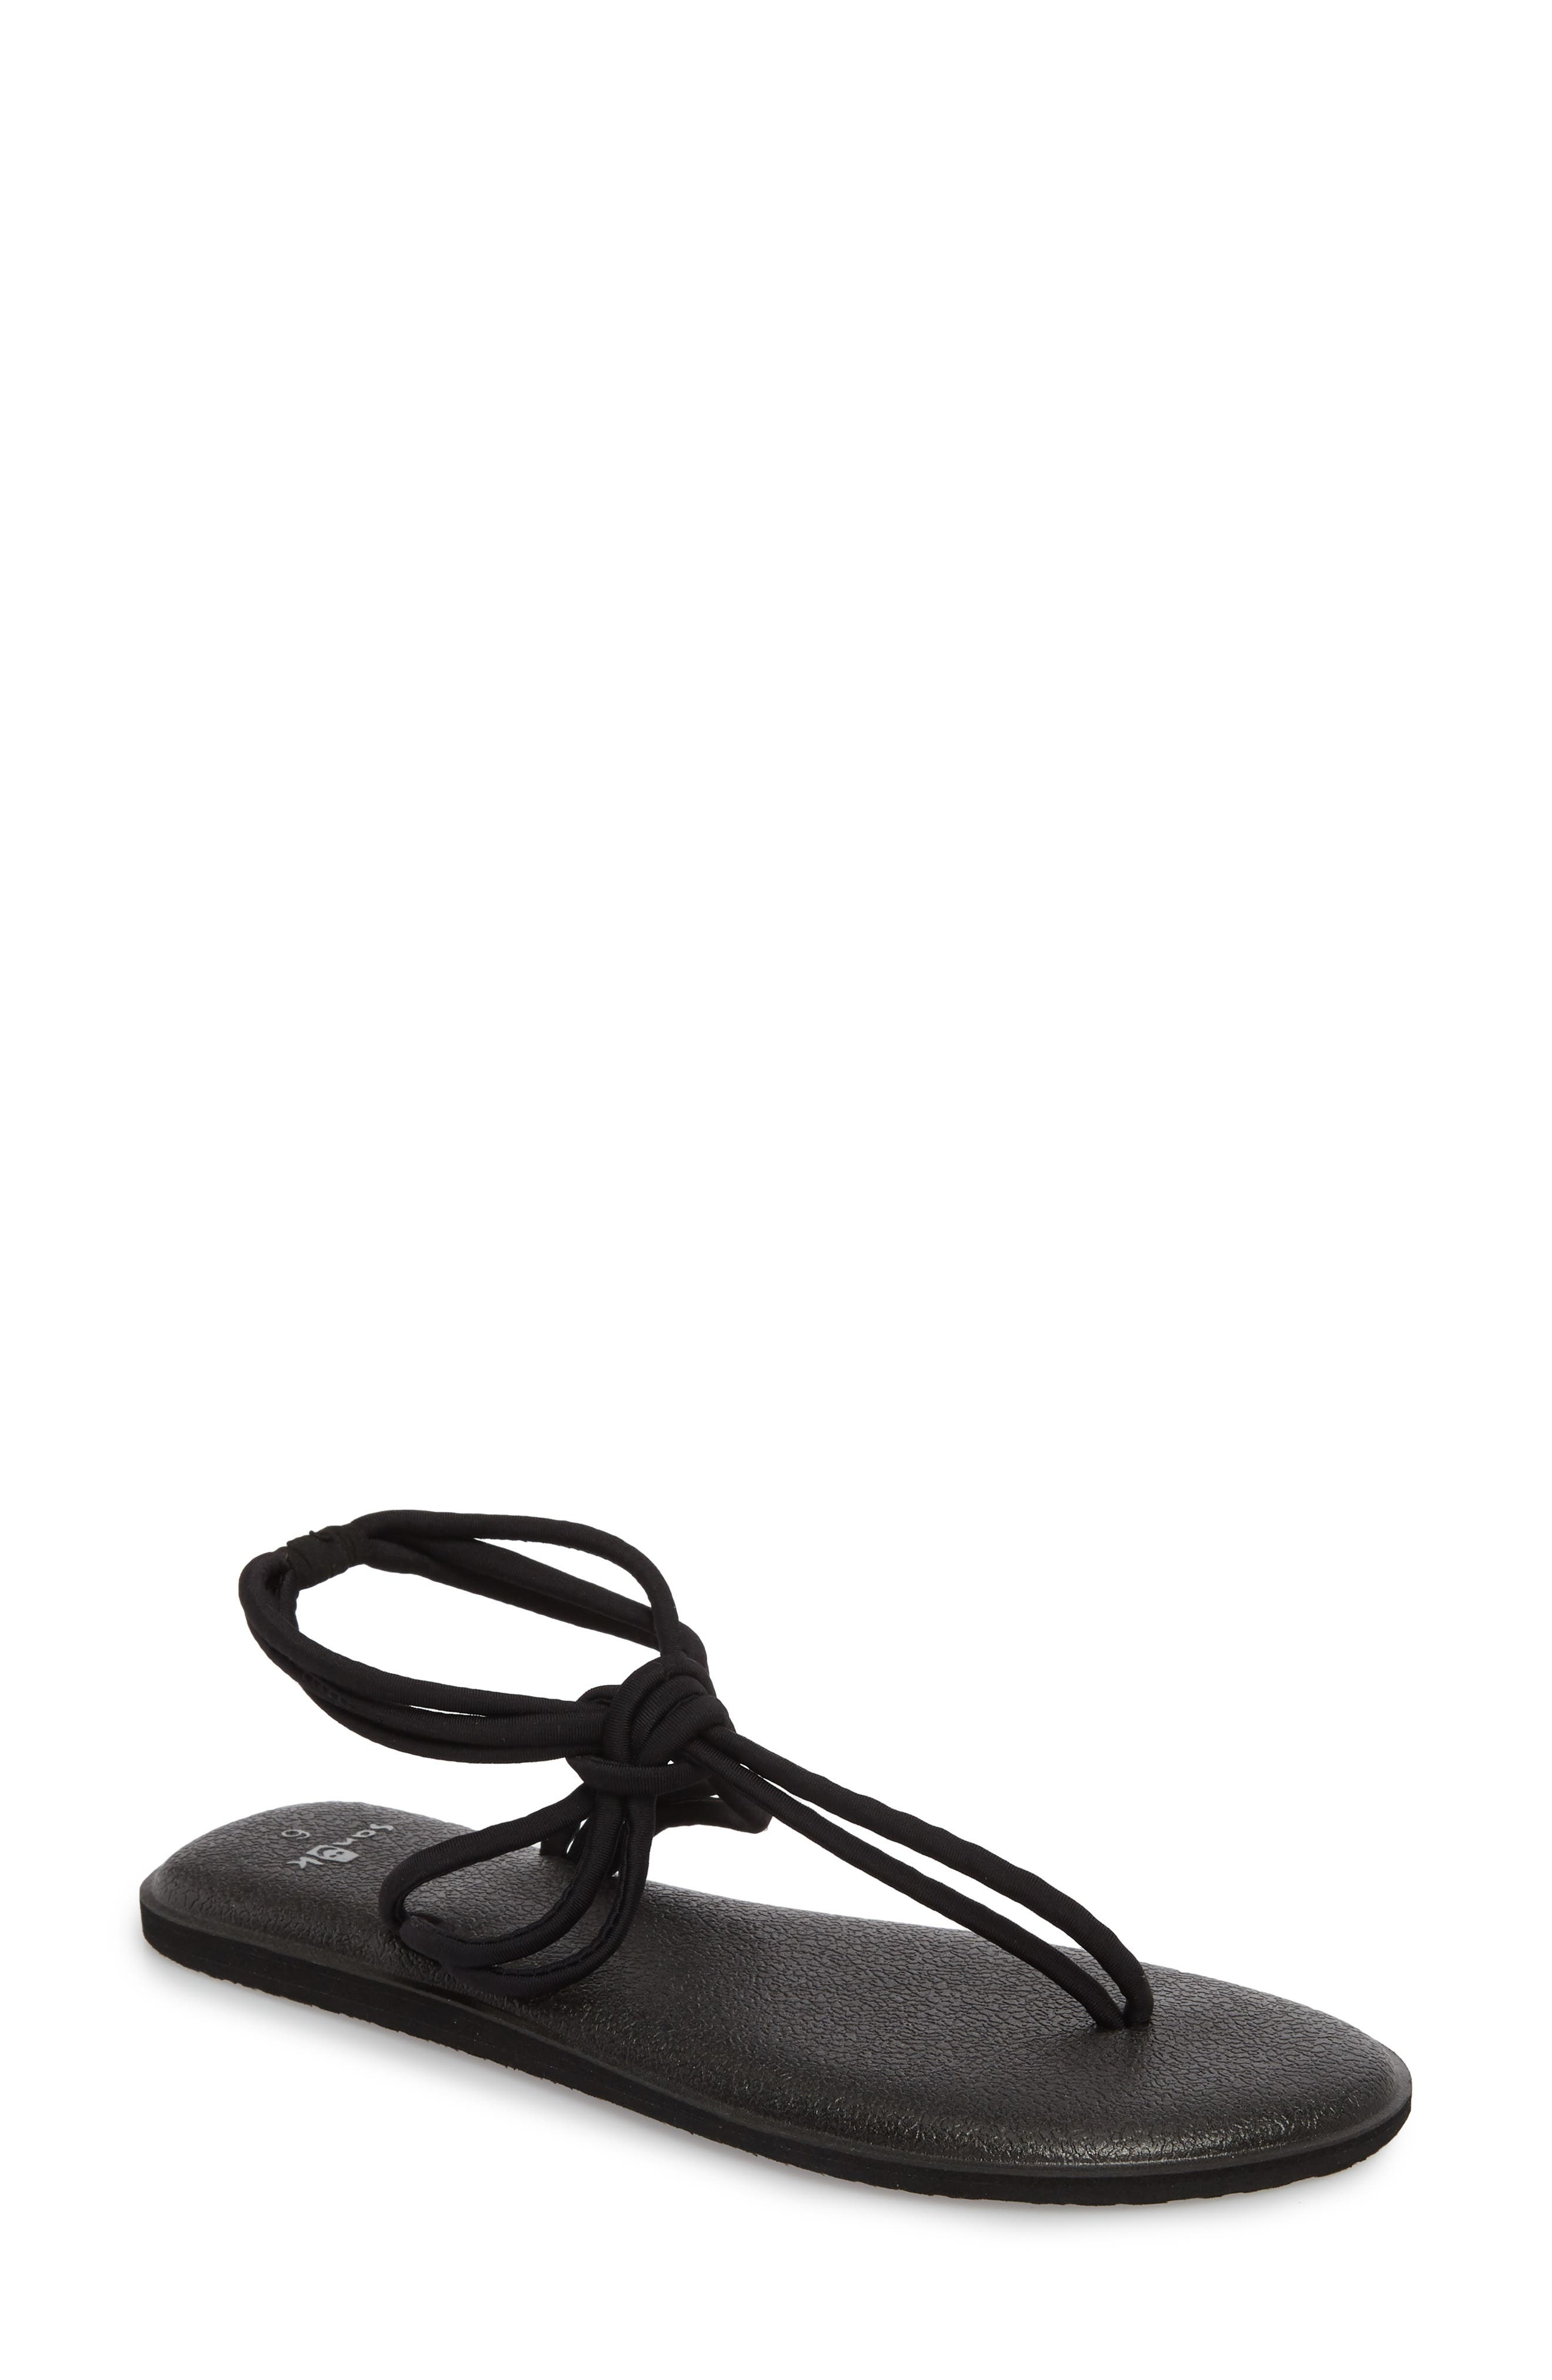 Yoga Sunshine Knotted Thong Sandal,                         Main,                         color, Black